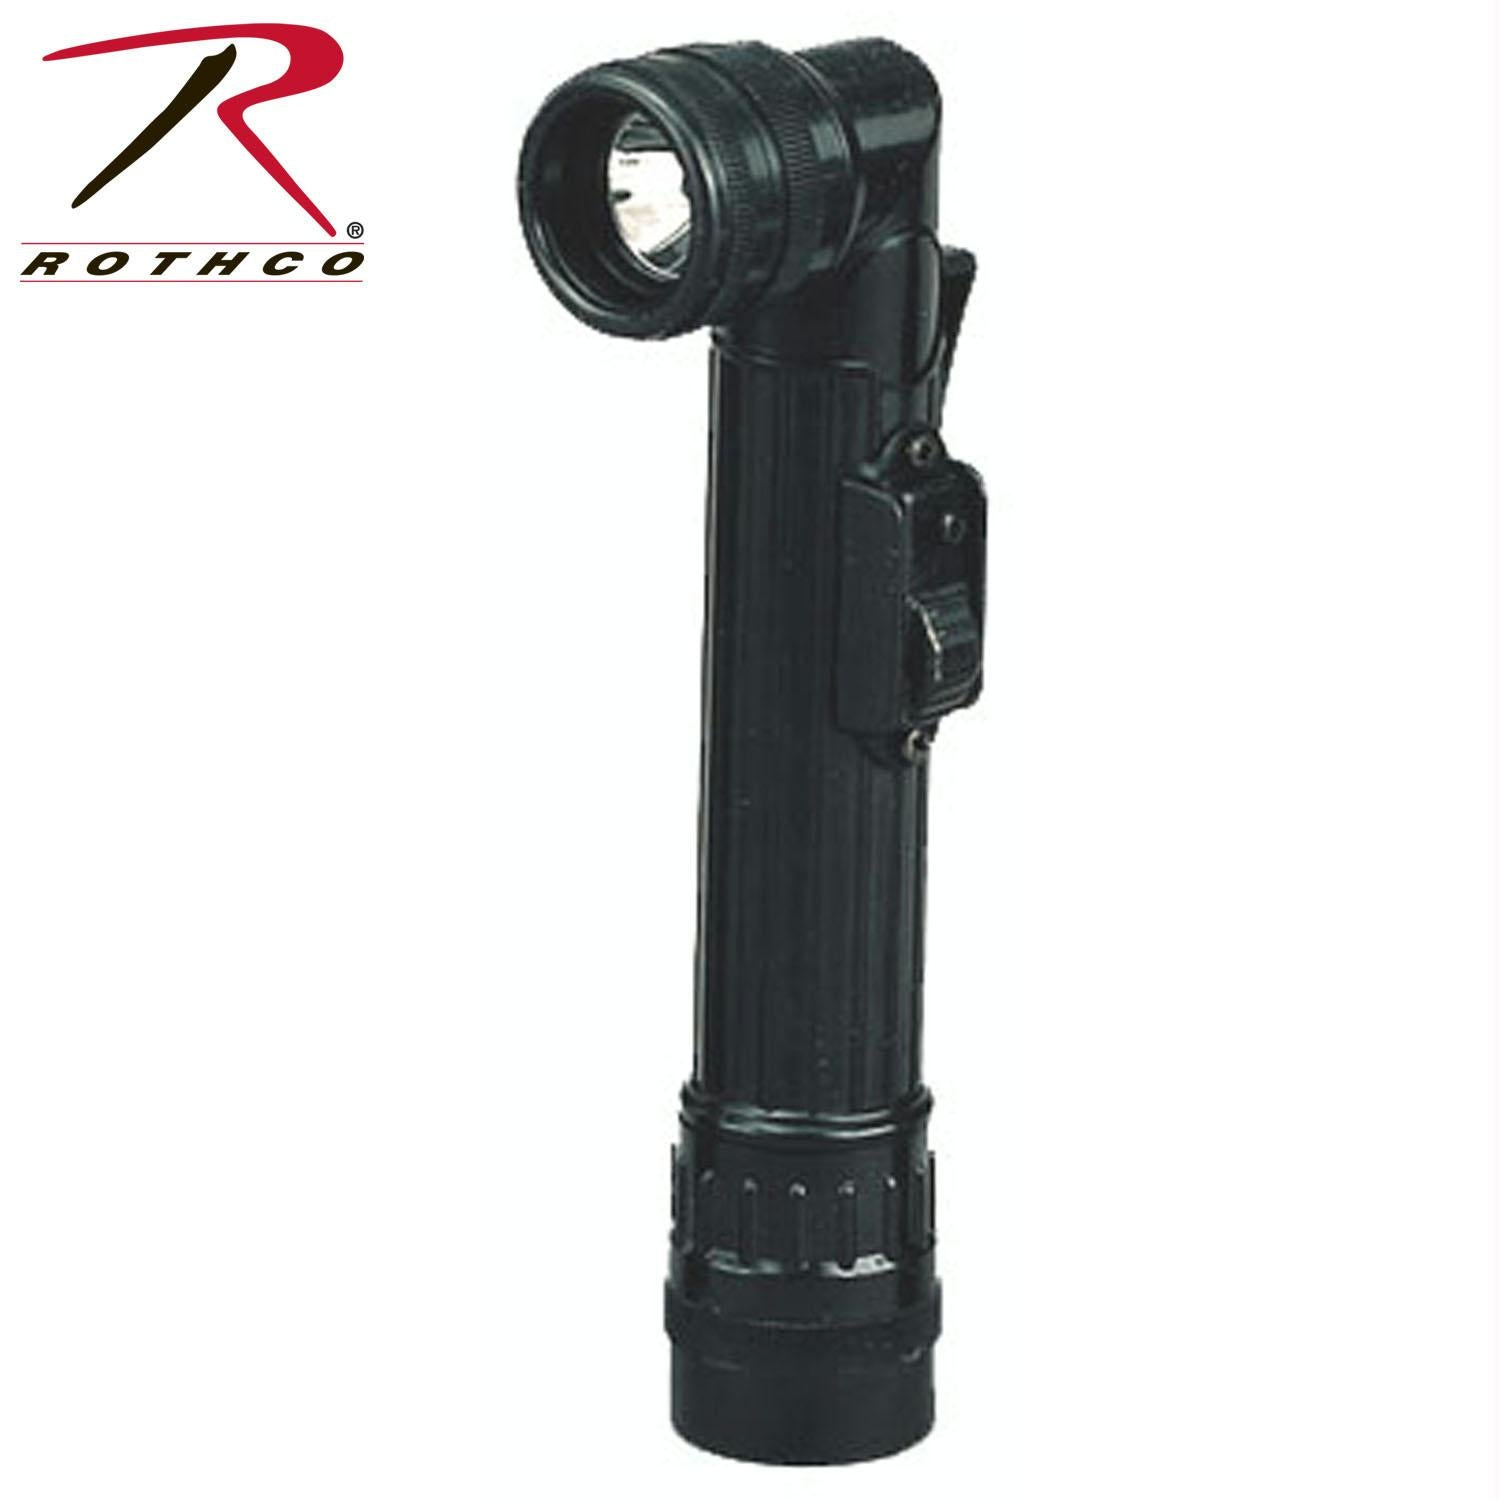 Rothco Mini Army Style Flashlight - Black